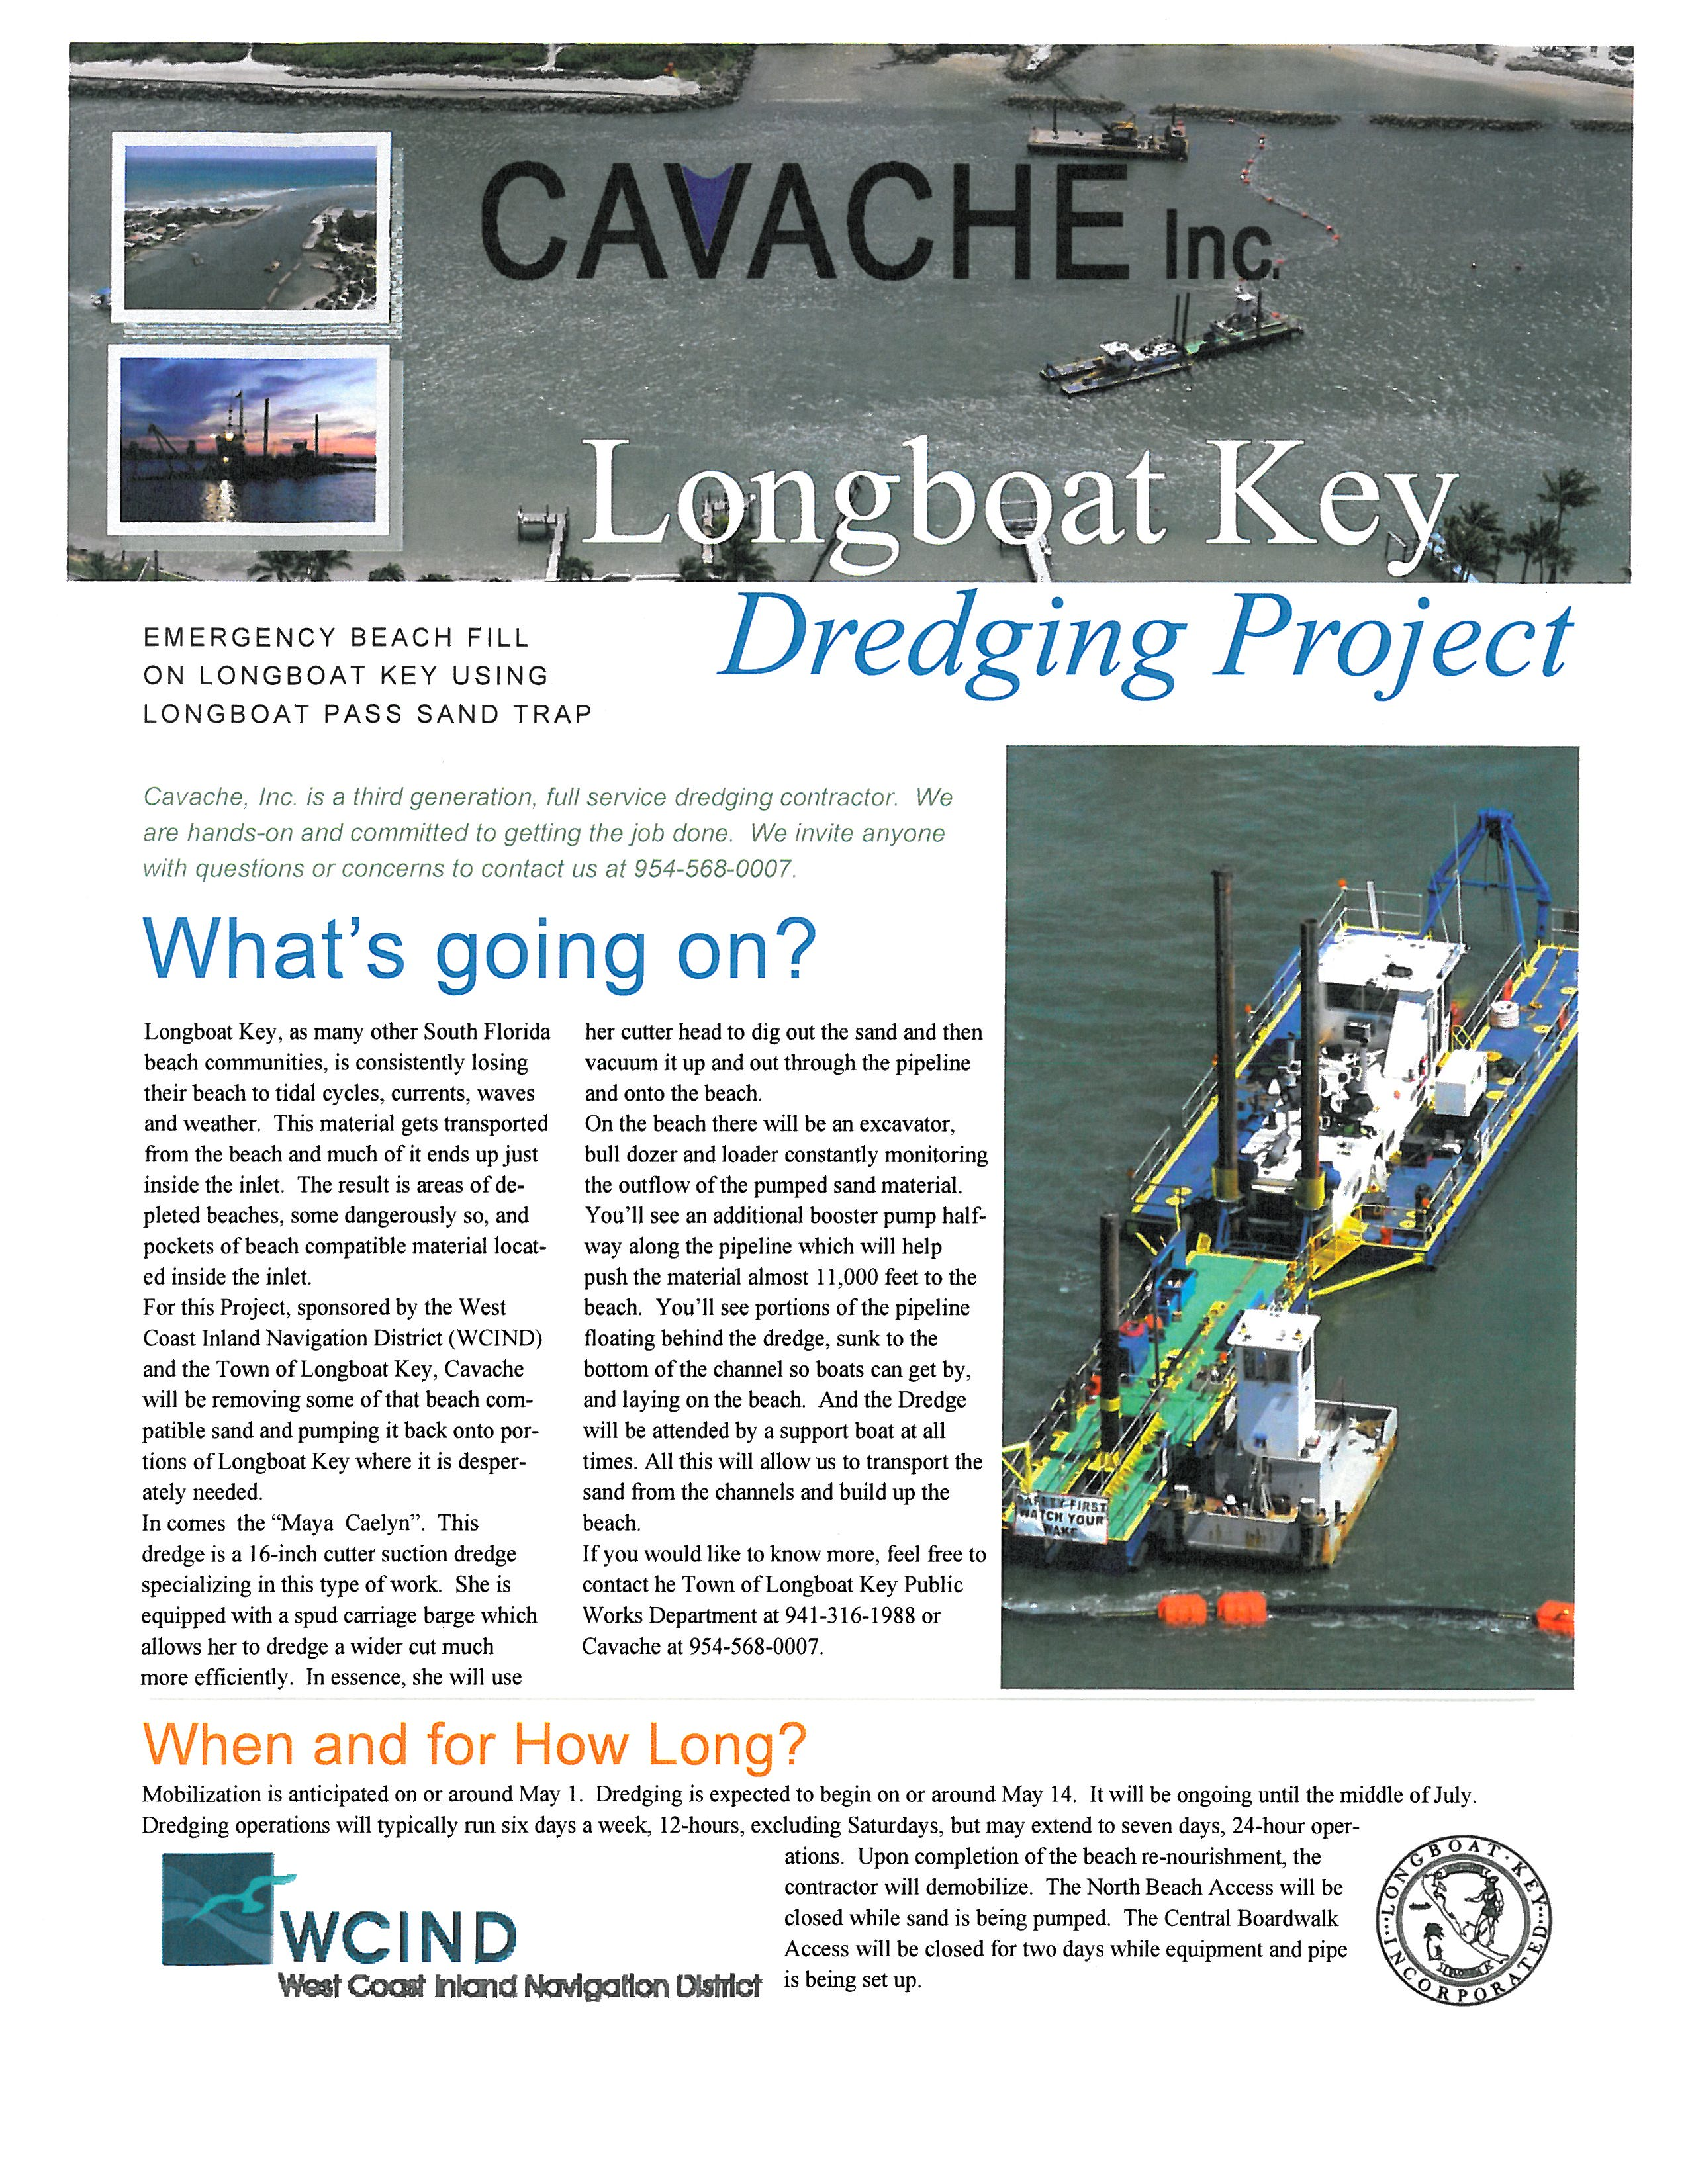 Longboat Key Dredging Project